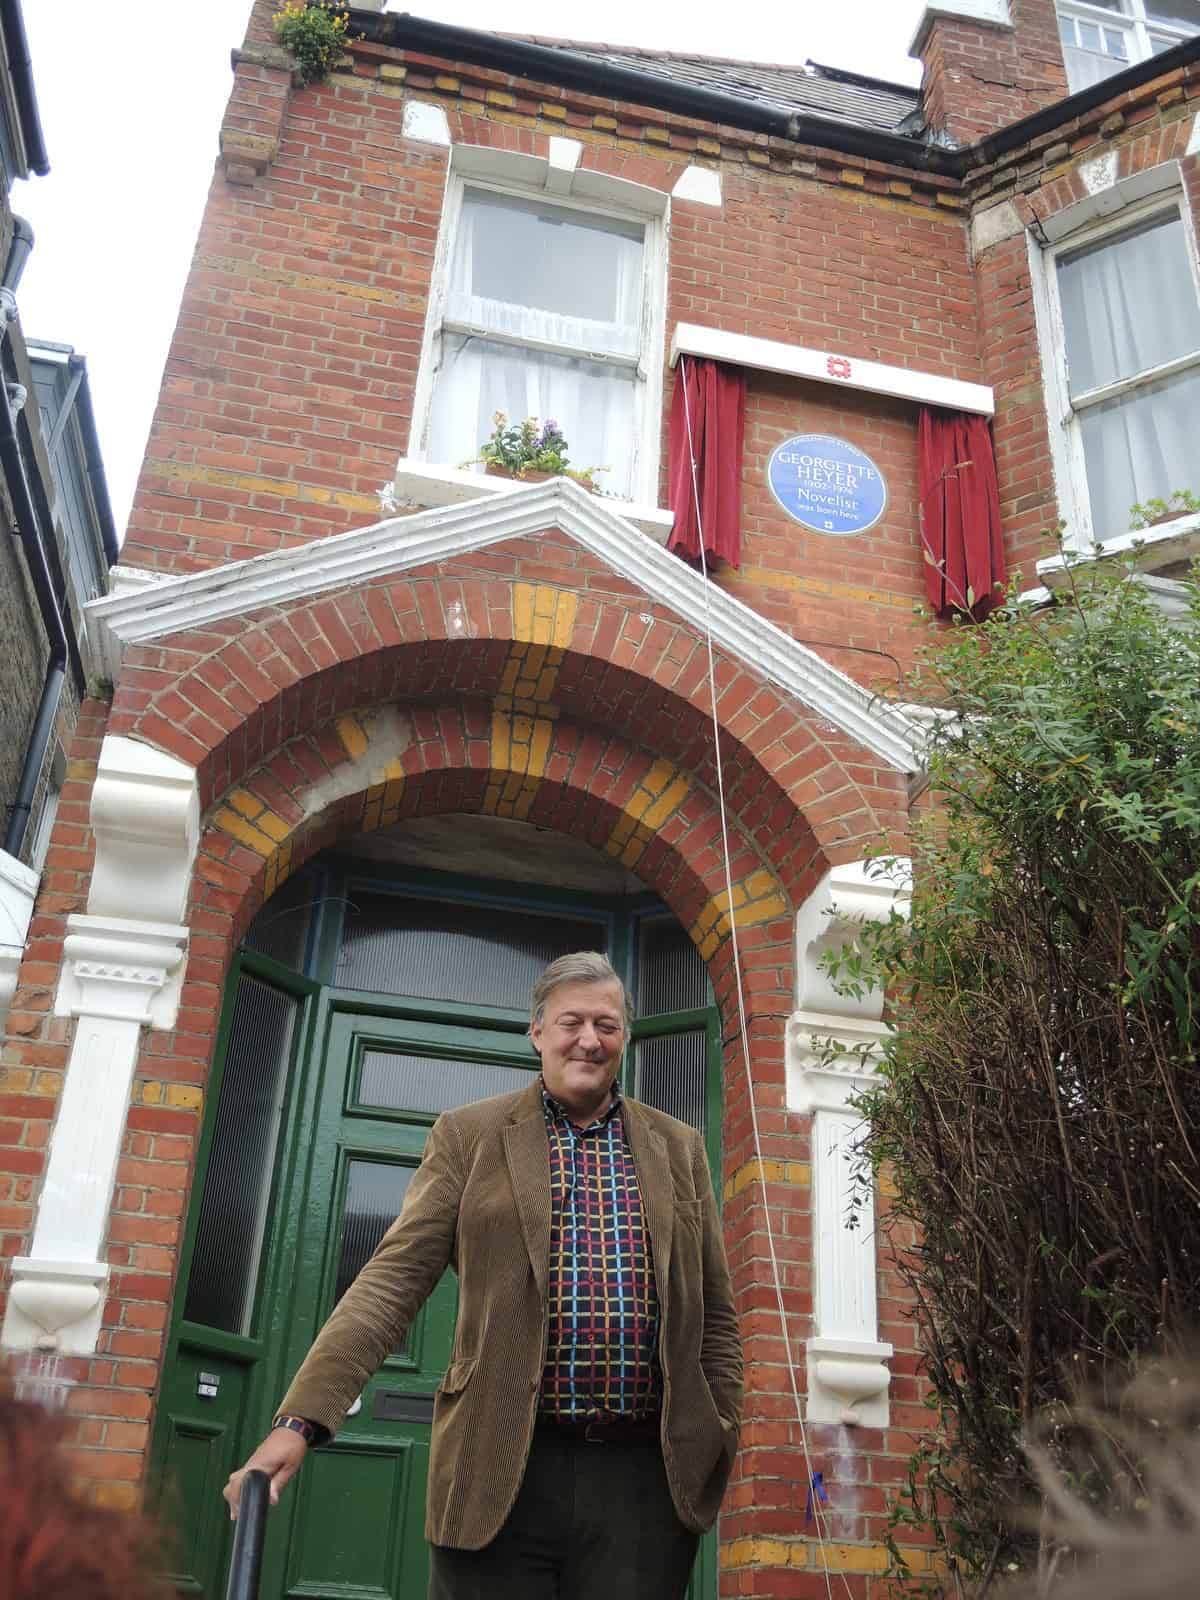 Stephen Fry unveils Georgette Heyer's Blue Plaque